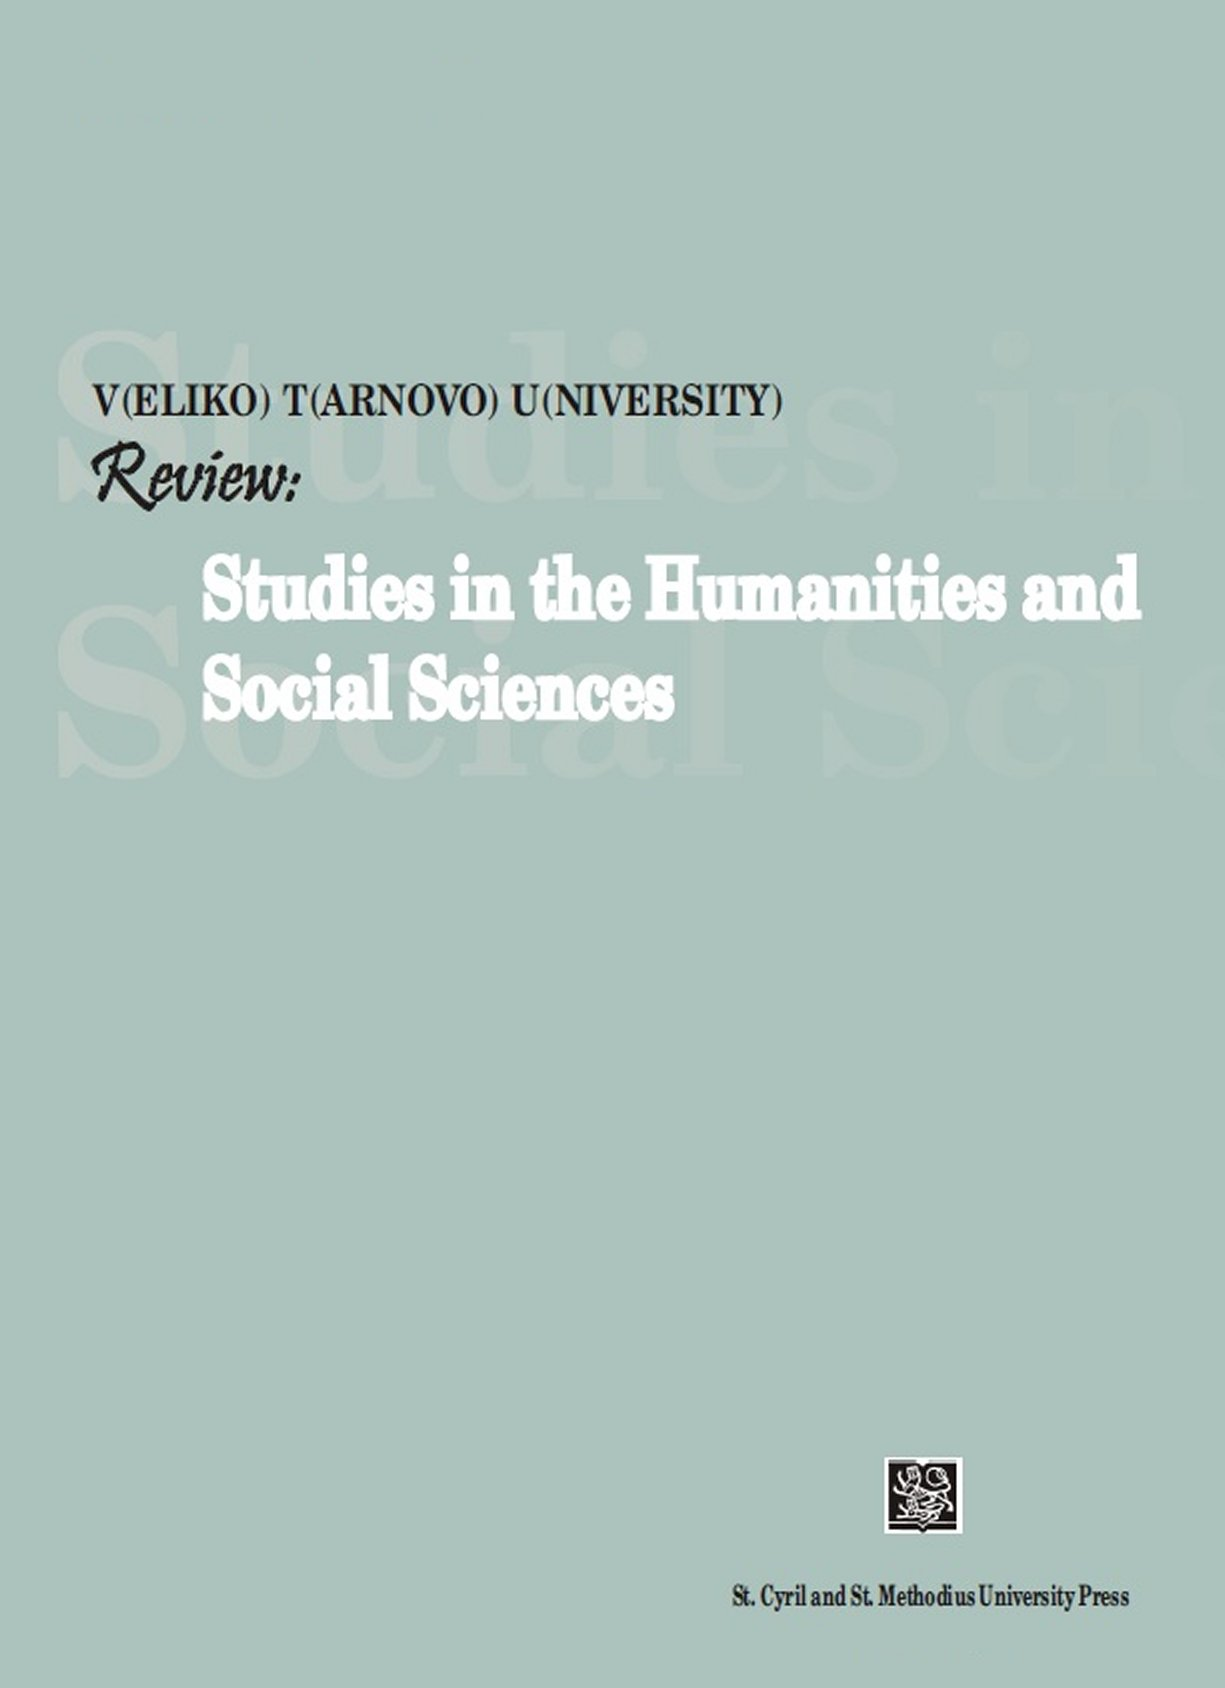 VTU review: Studies in the Humanities and Social Science